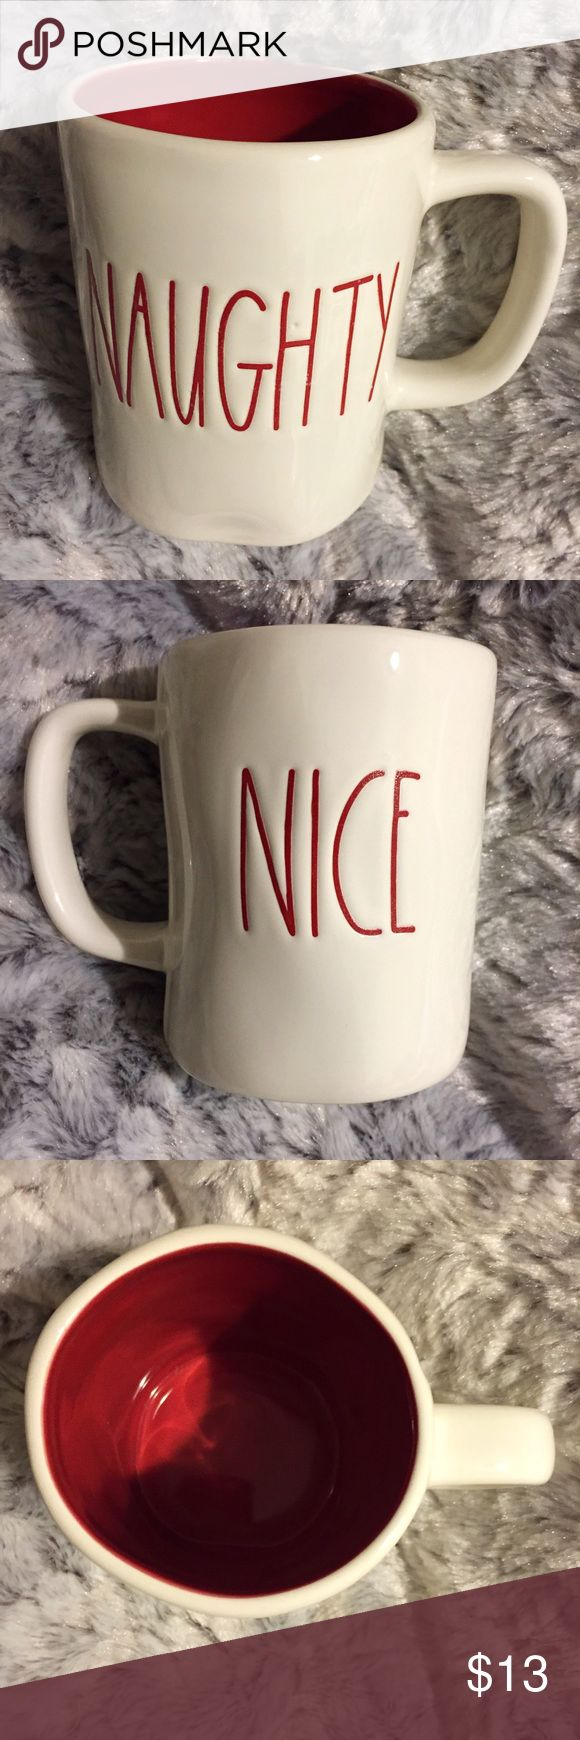 Rae Dunn NAUGHTY & NICE Red Mug Brand new, never used. This Rae Dunn NAUGHTY and NICE Off White / Ivory Mug is perfect for your morning cup of coffee or tea! Has NAUGHTY on one side & NICE on the other in red font. Interior of the mug is red also. I also have other Rae Dunn mugs, spoon rests and trays available in my closet! Rae Dunn Other